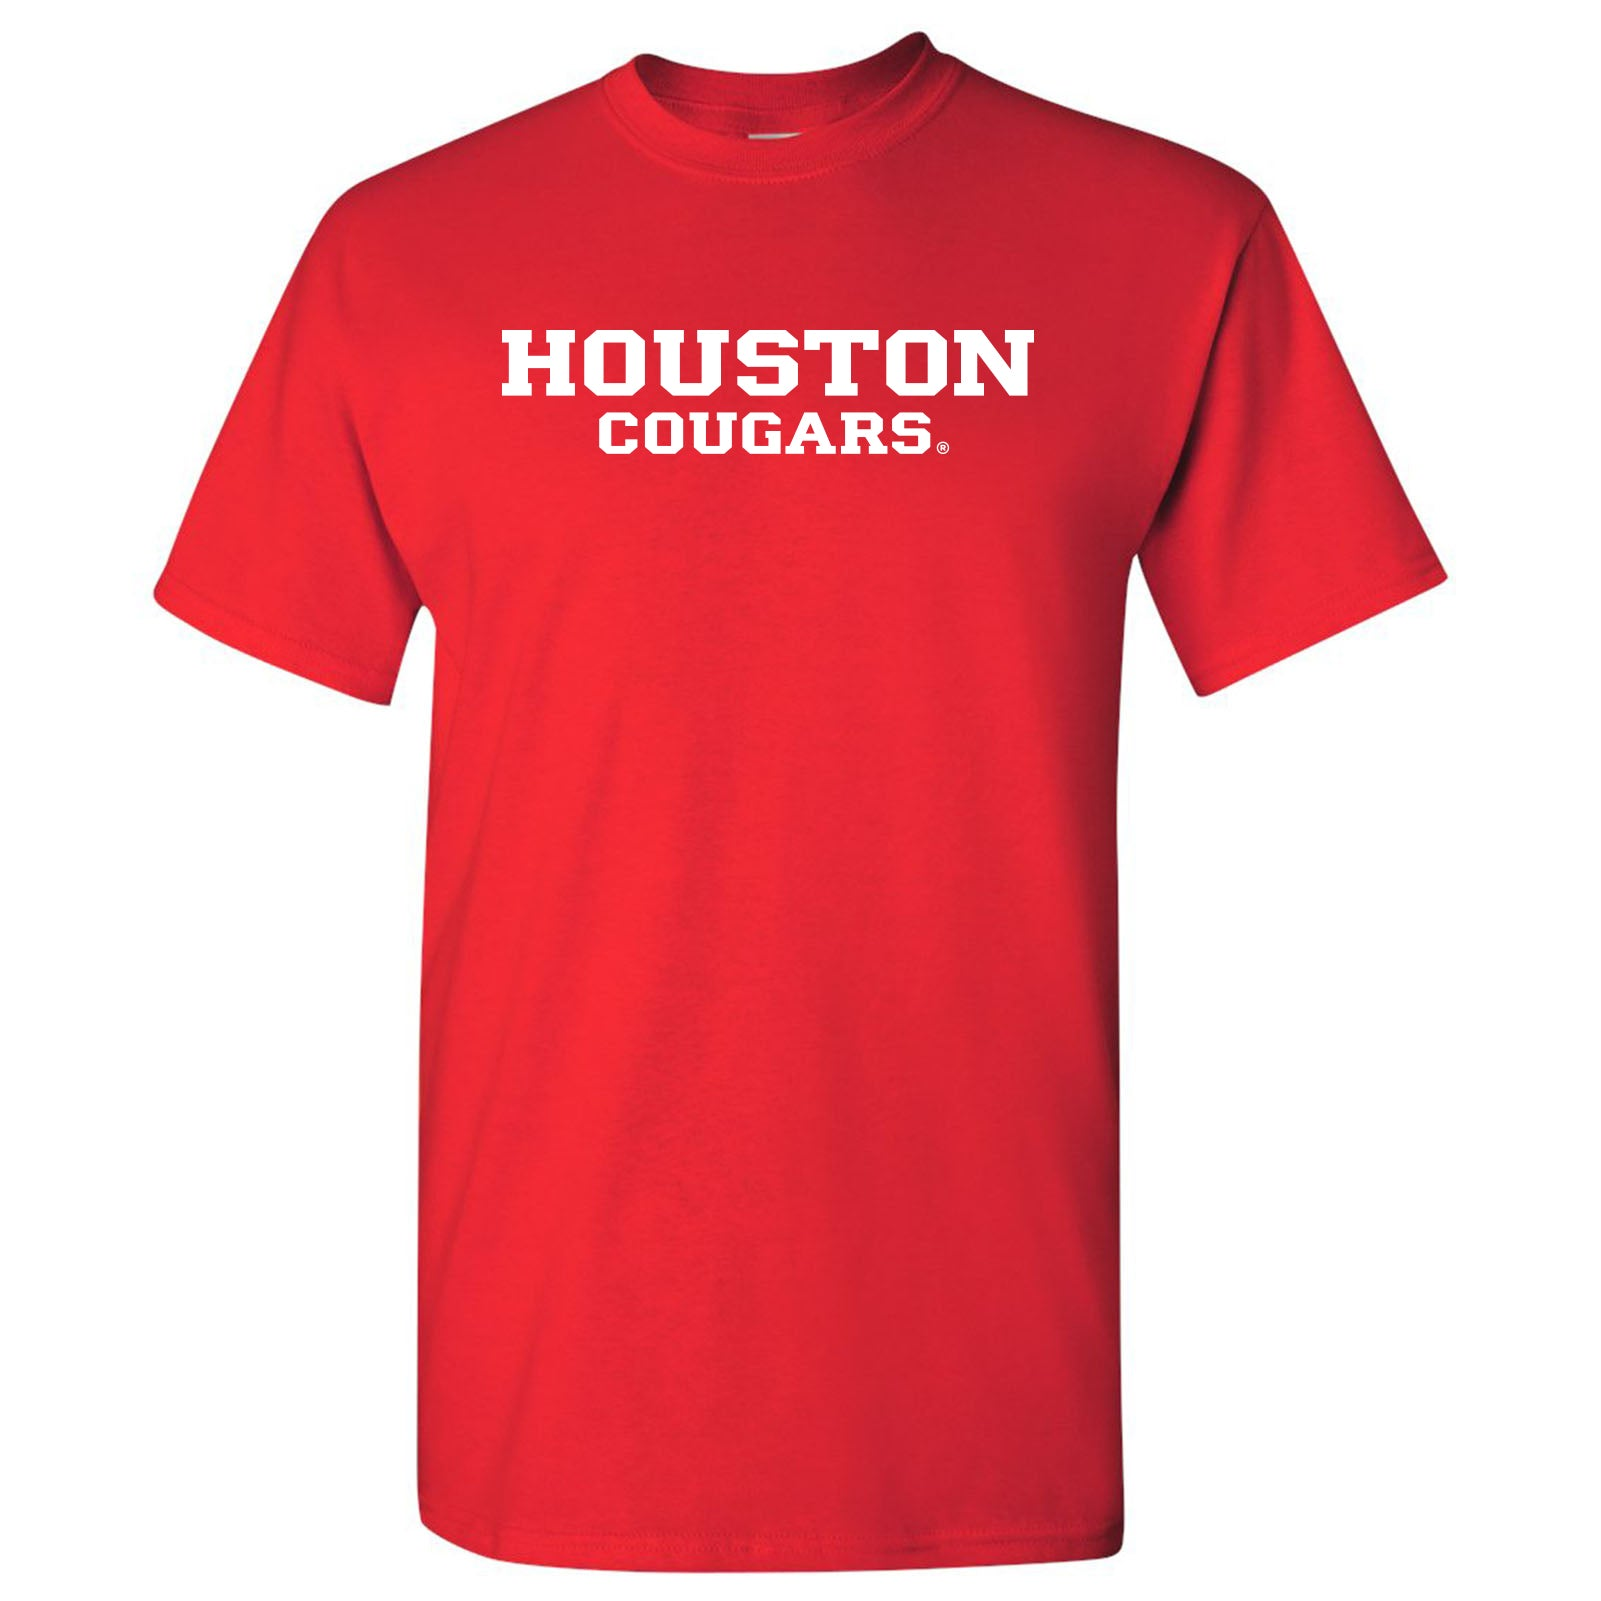 Houston Cougars Basic Block T Shirt Red Underground Printing